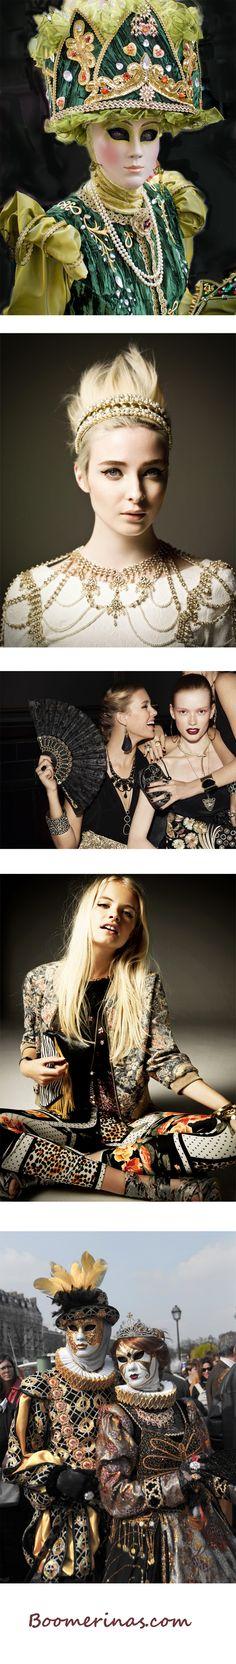 Baroque Fashion Trend for Baby Boomers at http://boomerinas.com/2013/02/baroque-fashion-trend/